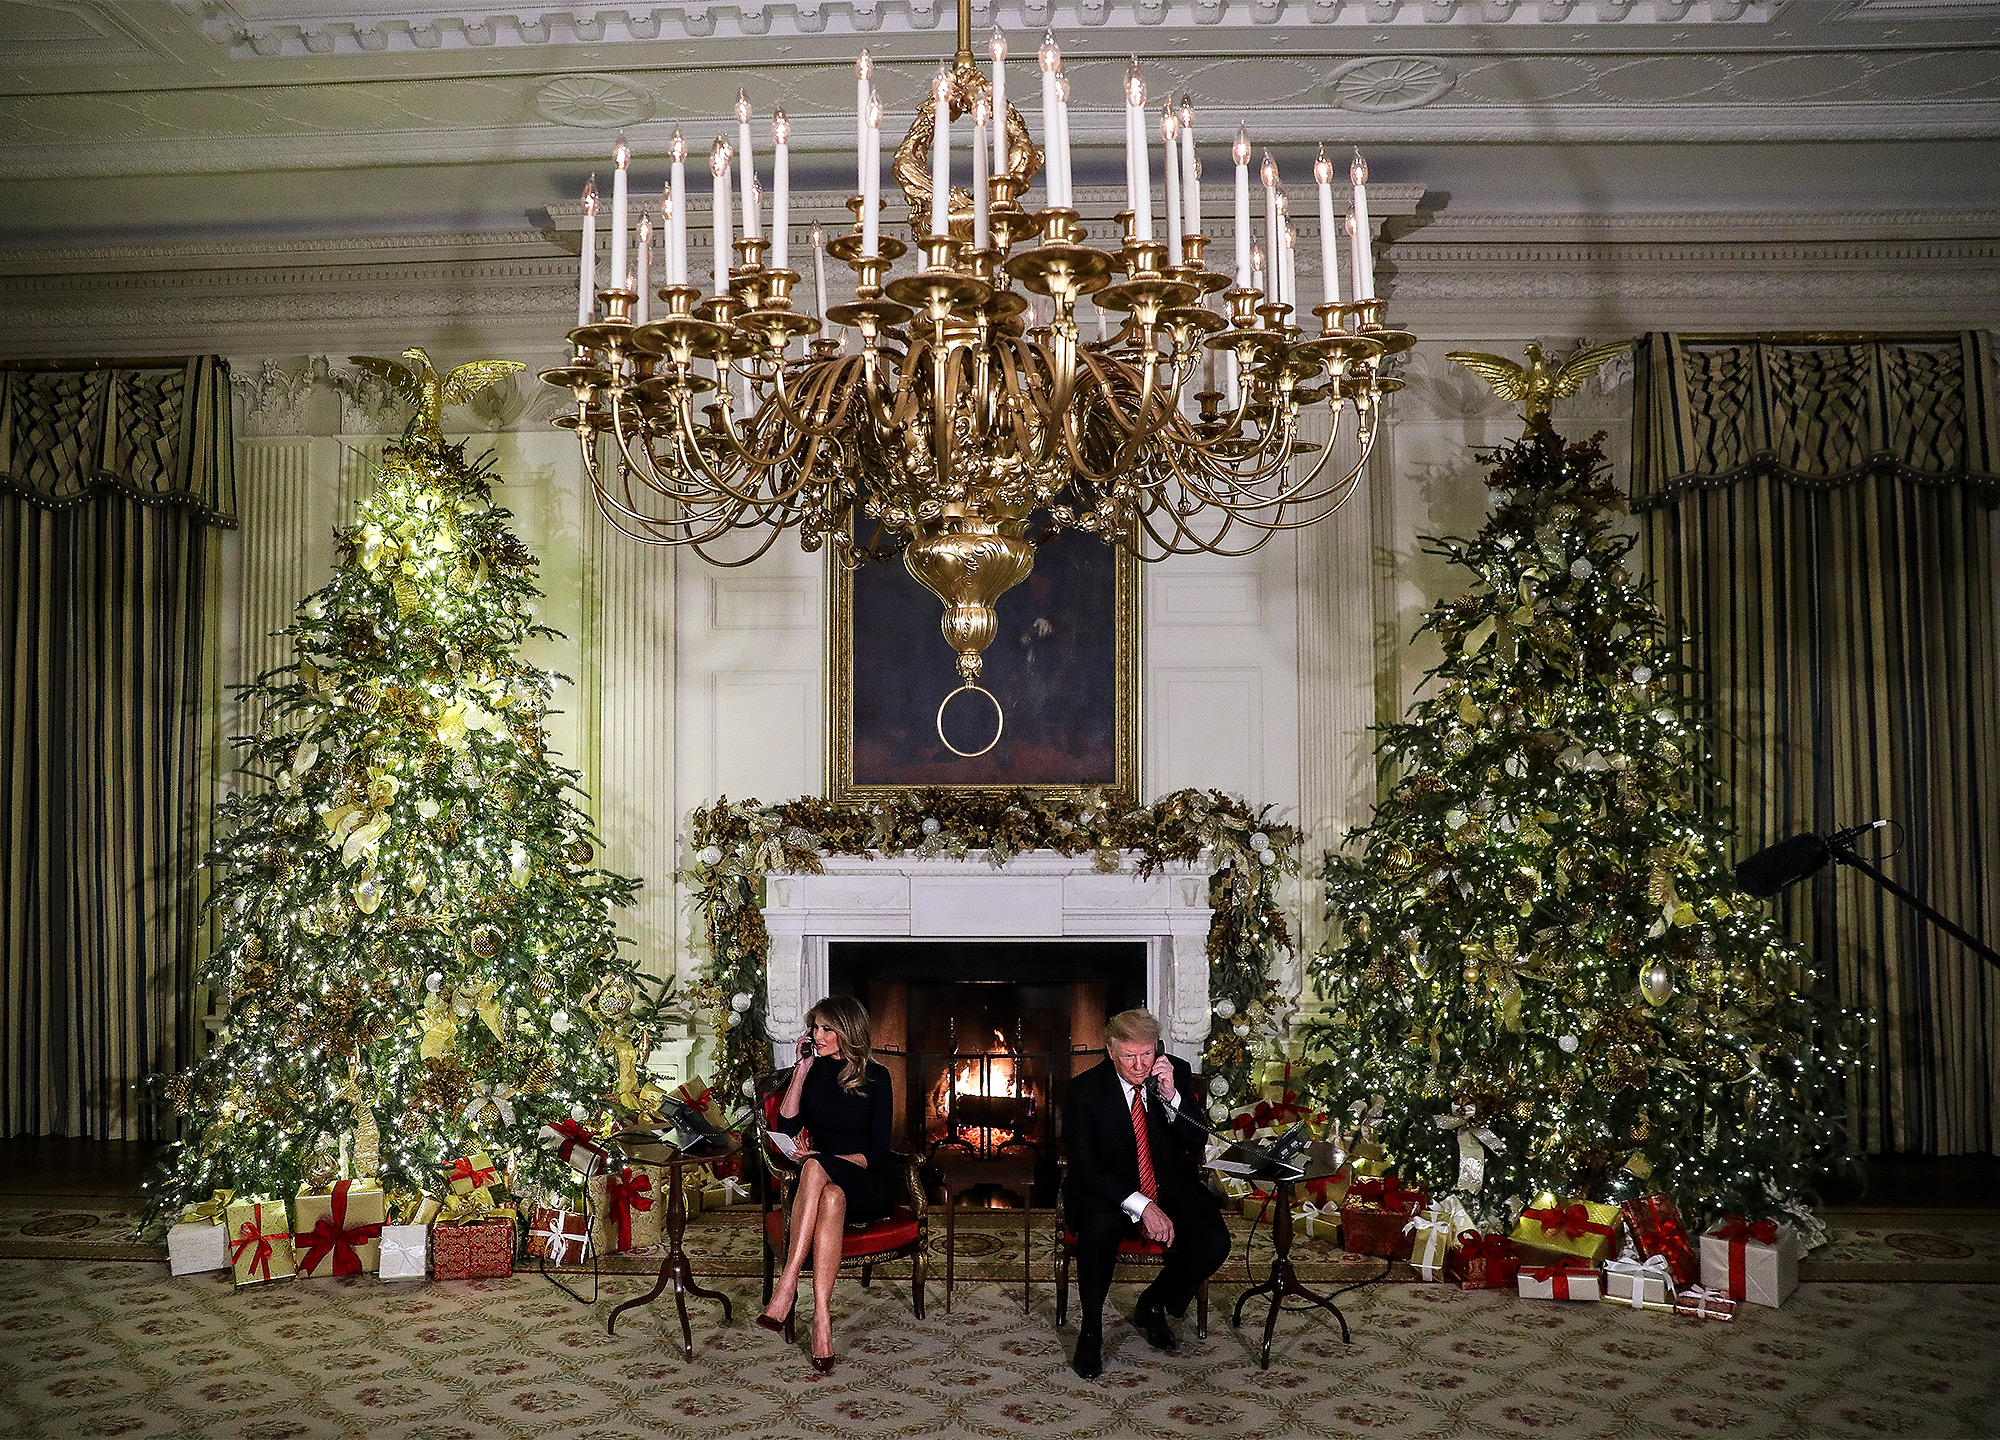 The President and First Lady will participate in the NORAD Santa tracker phone calls